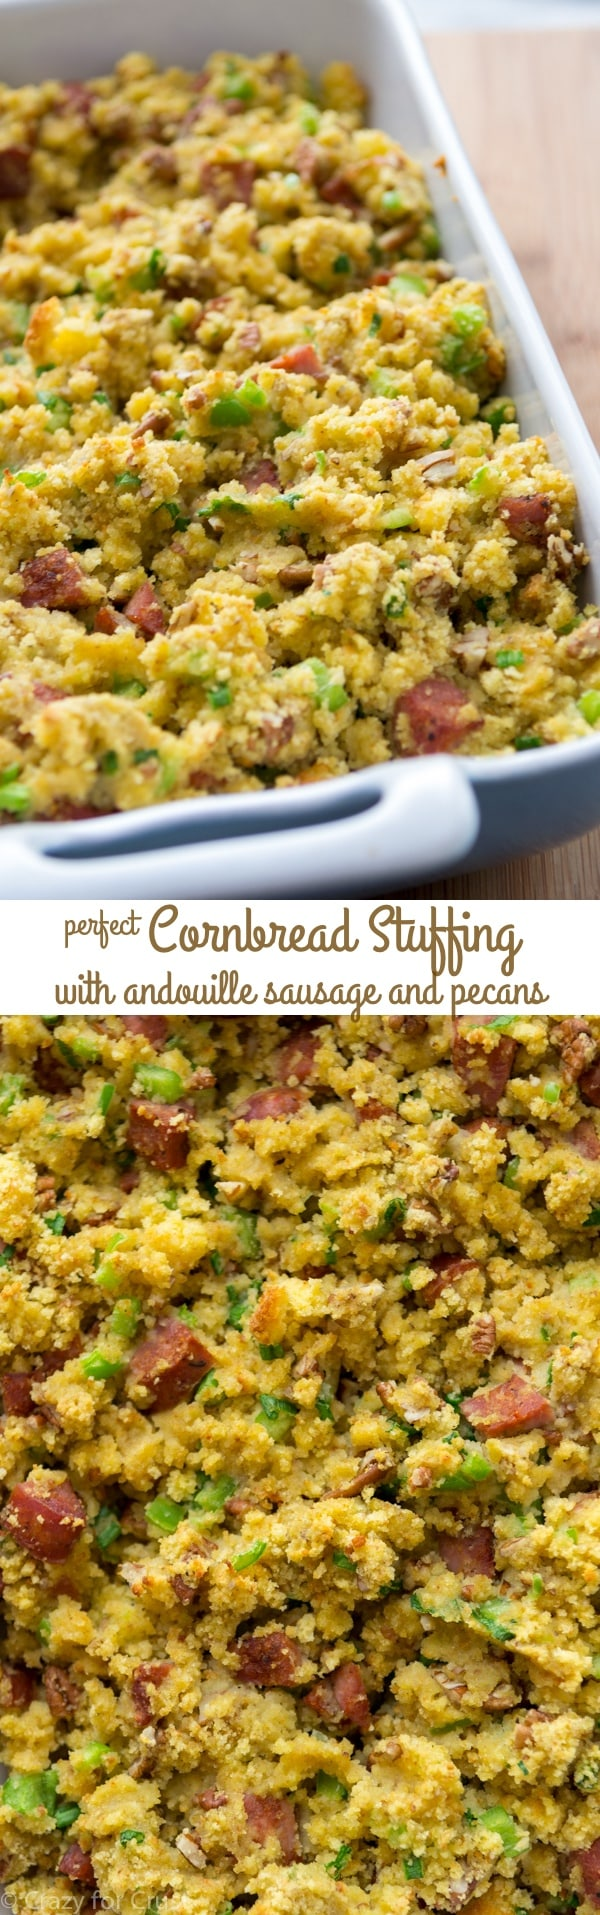 Cornbread Stuffing with andouille sausage is my family's most requested Thanksgiving recipe!